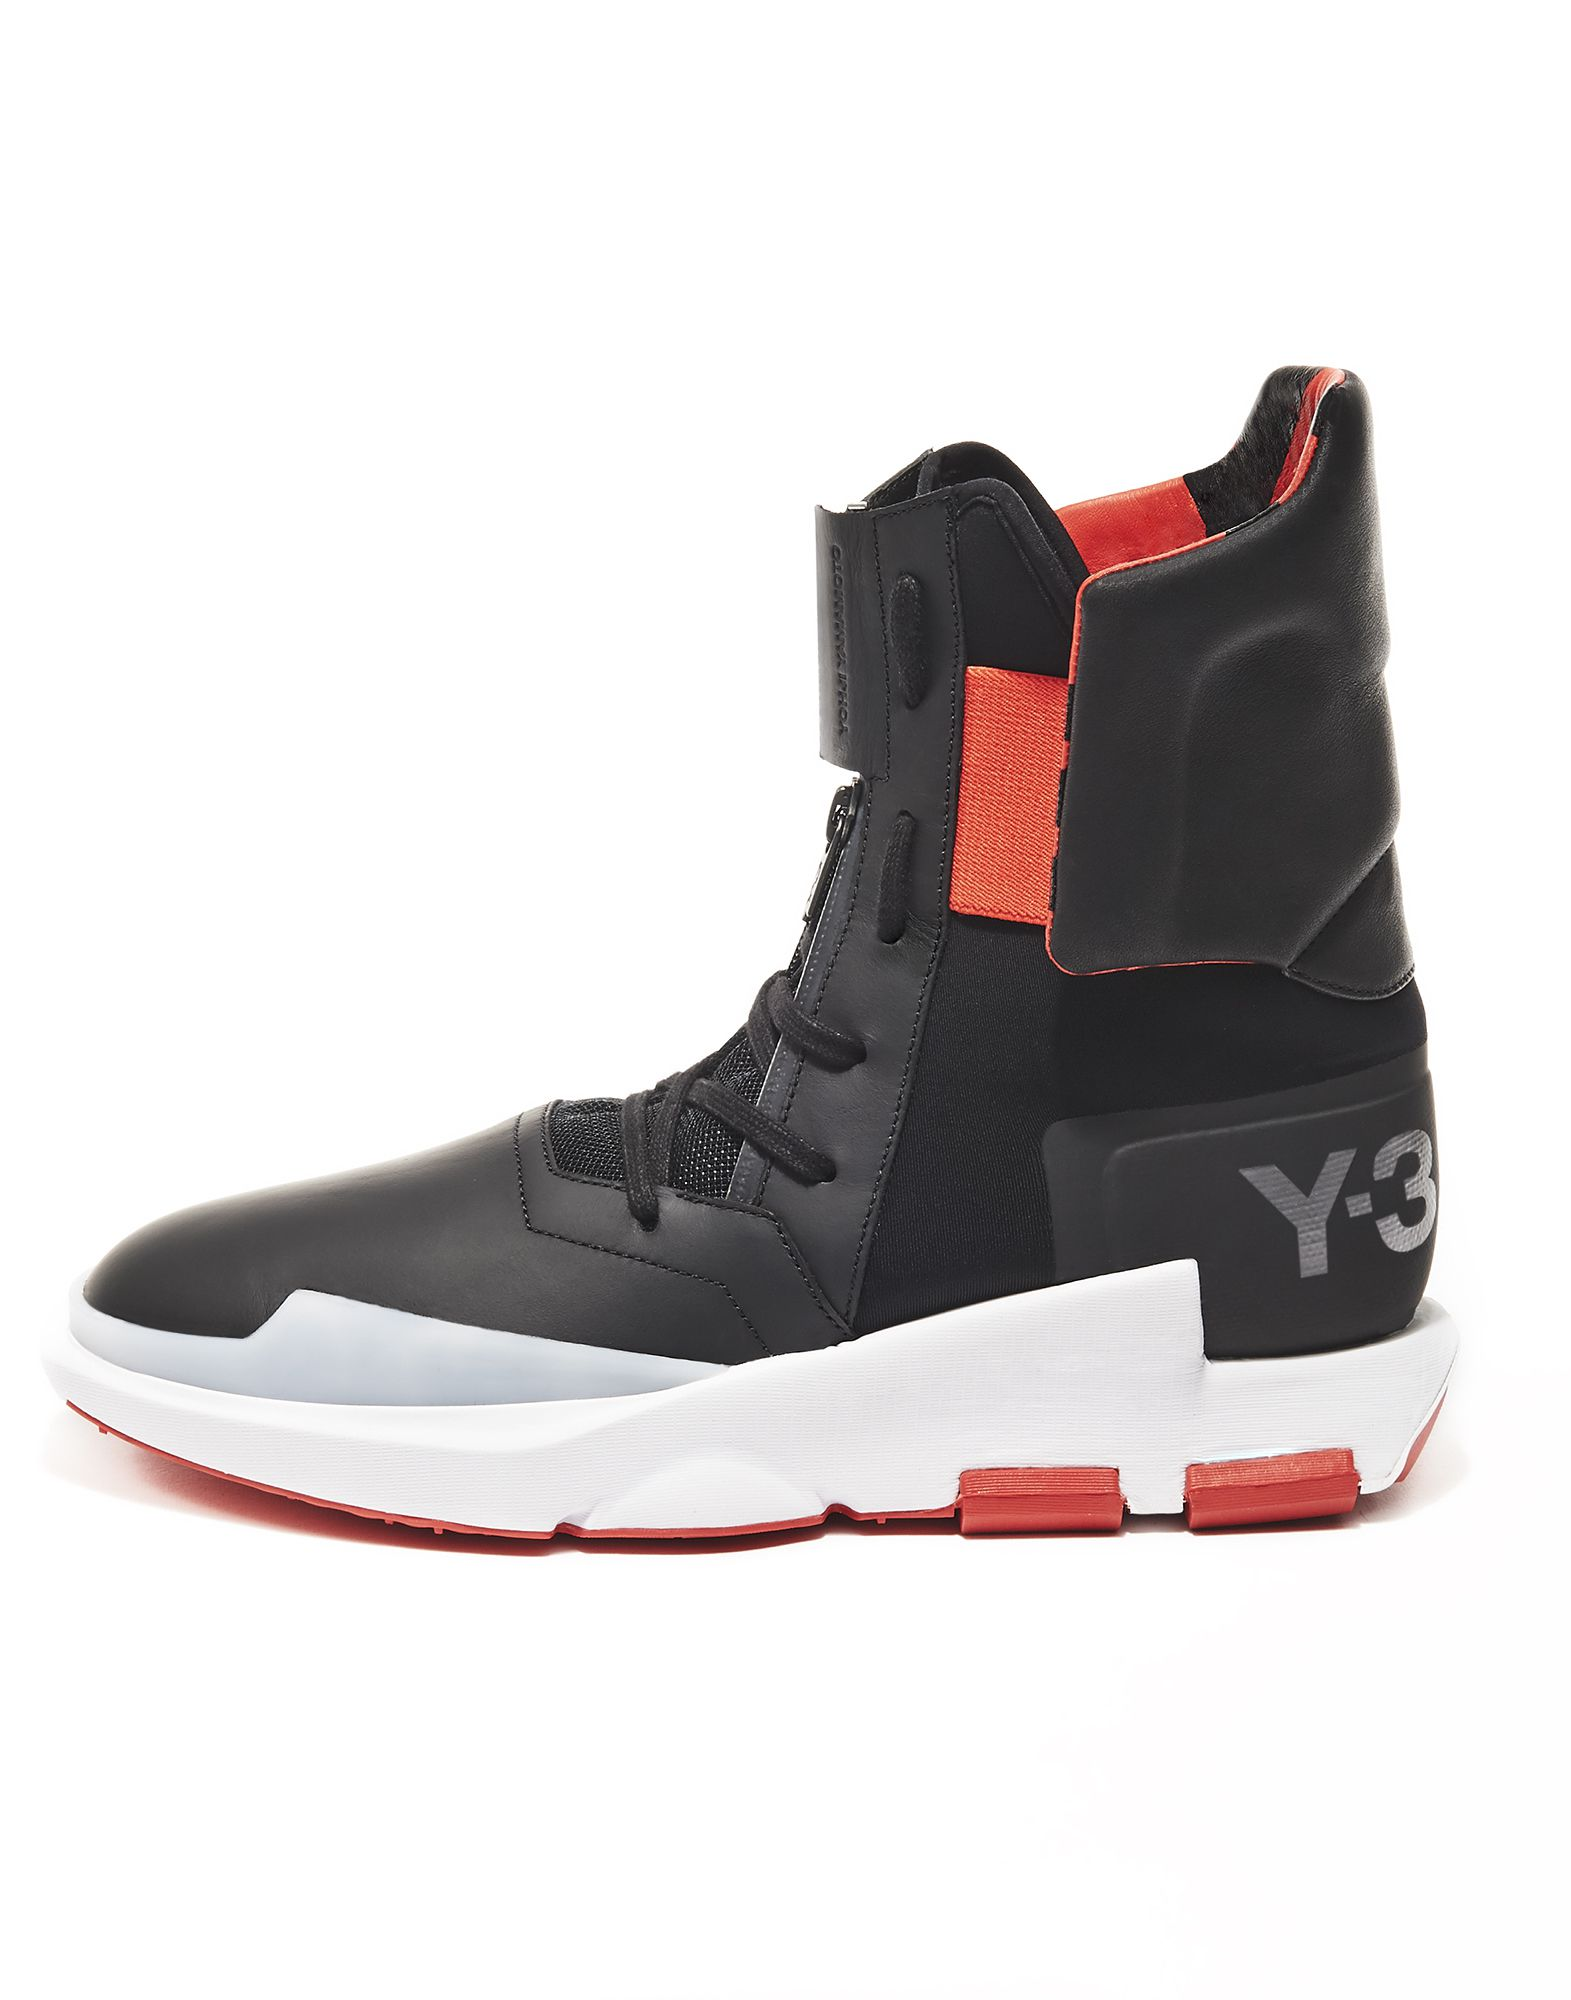 Y-3 ELLE RUN Sneakers for Women Adidas Y-3 Official Store